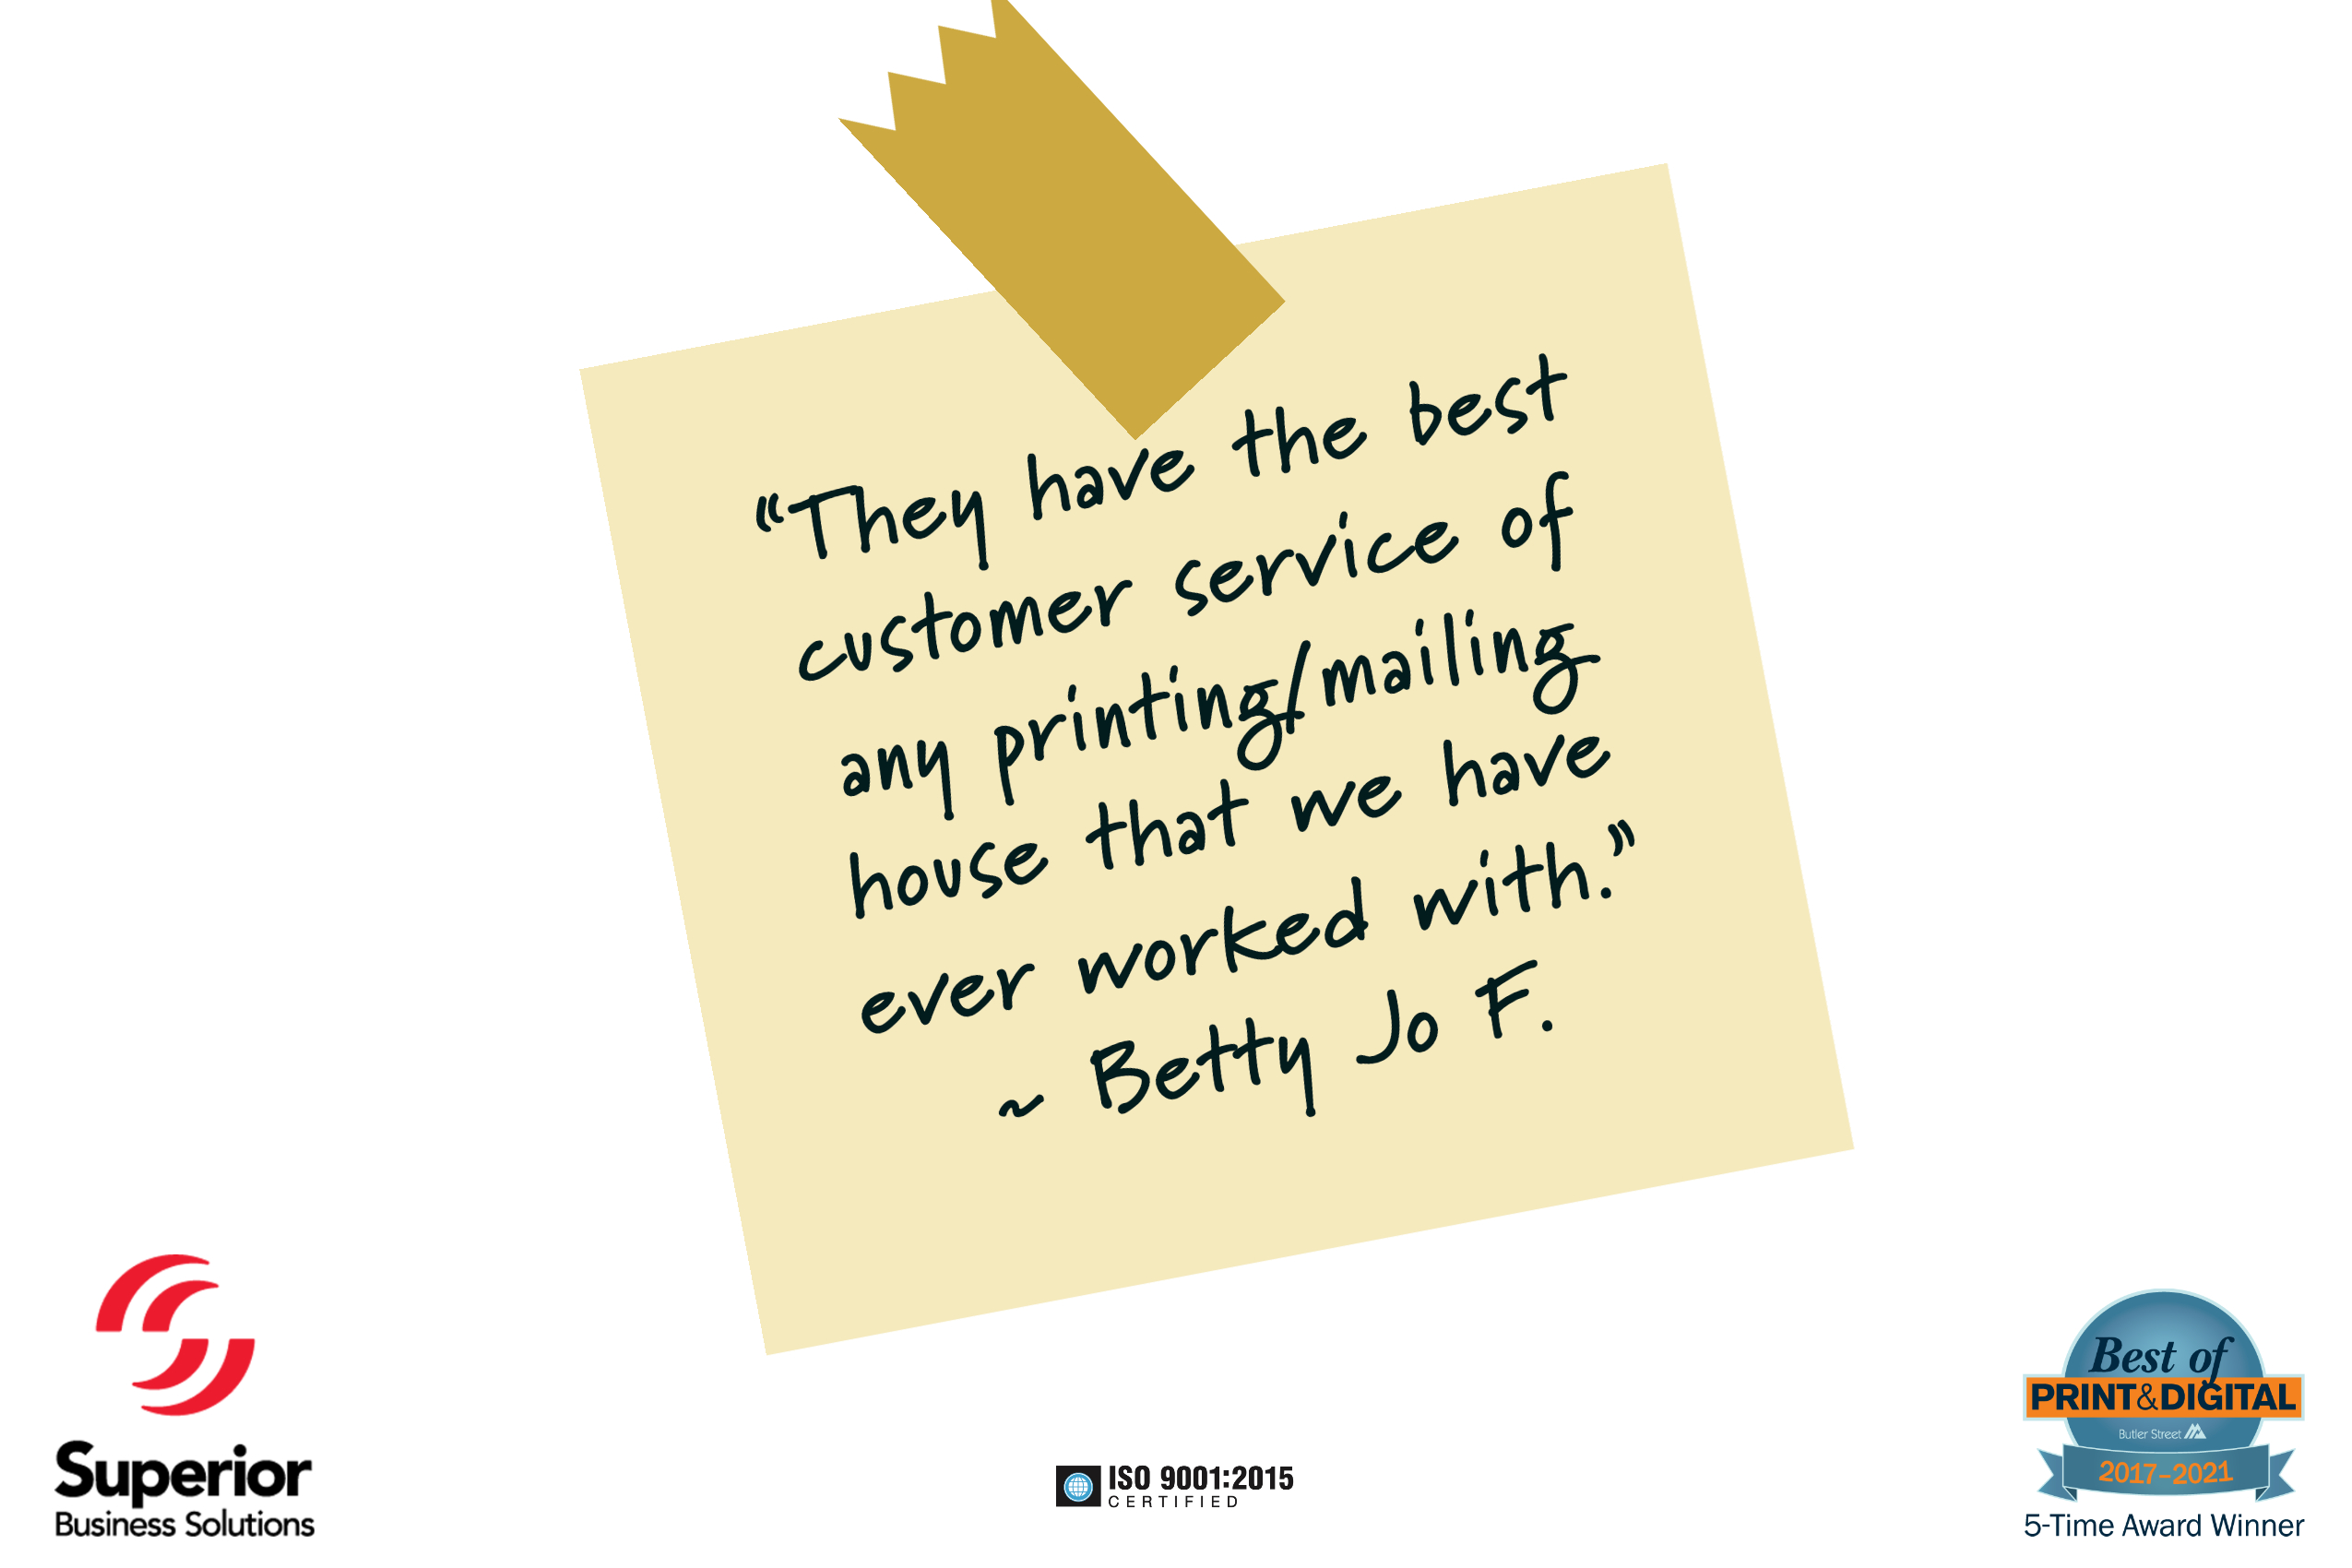 best_of_print_and_digital_winner_quote_betty_jo